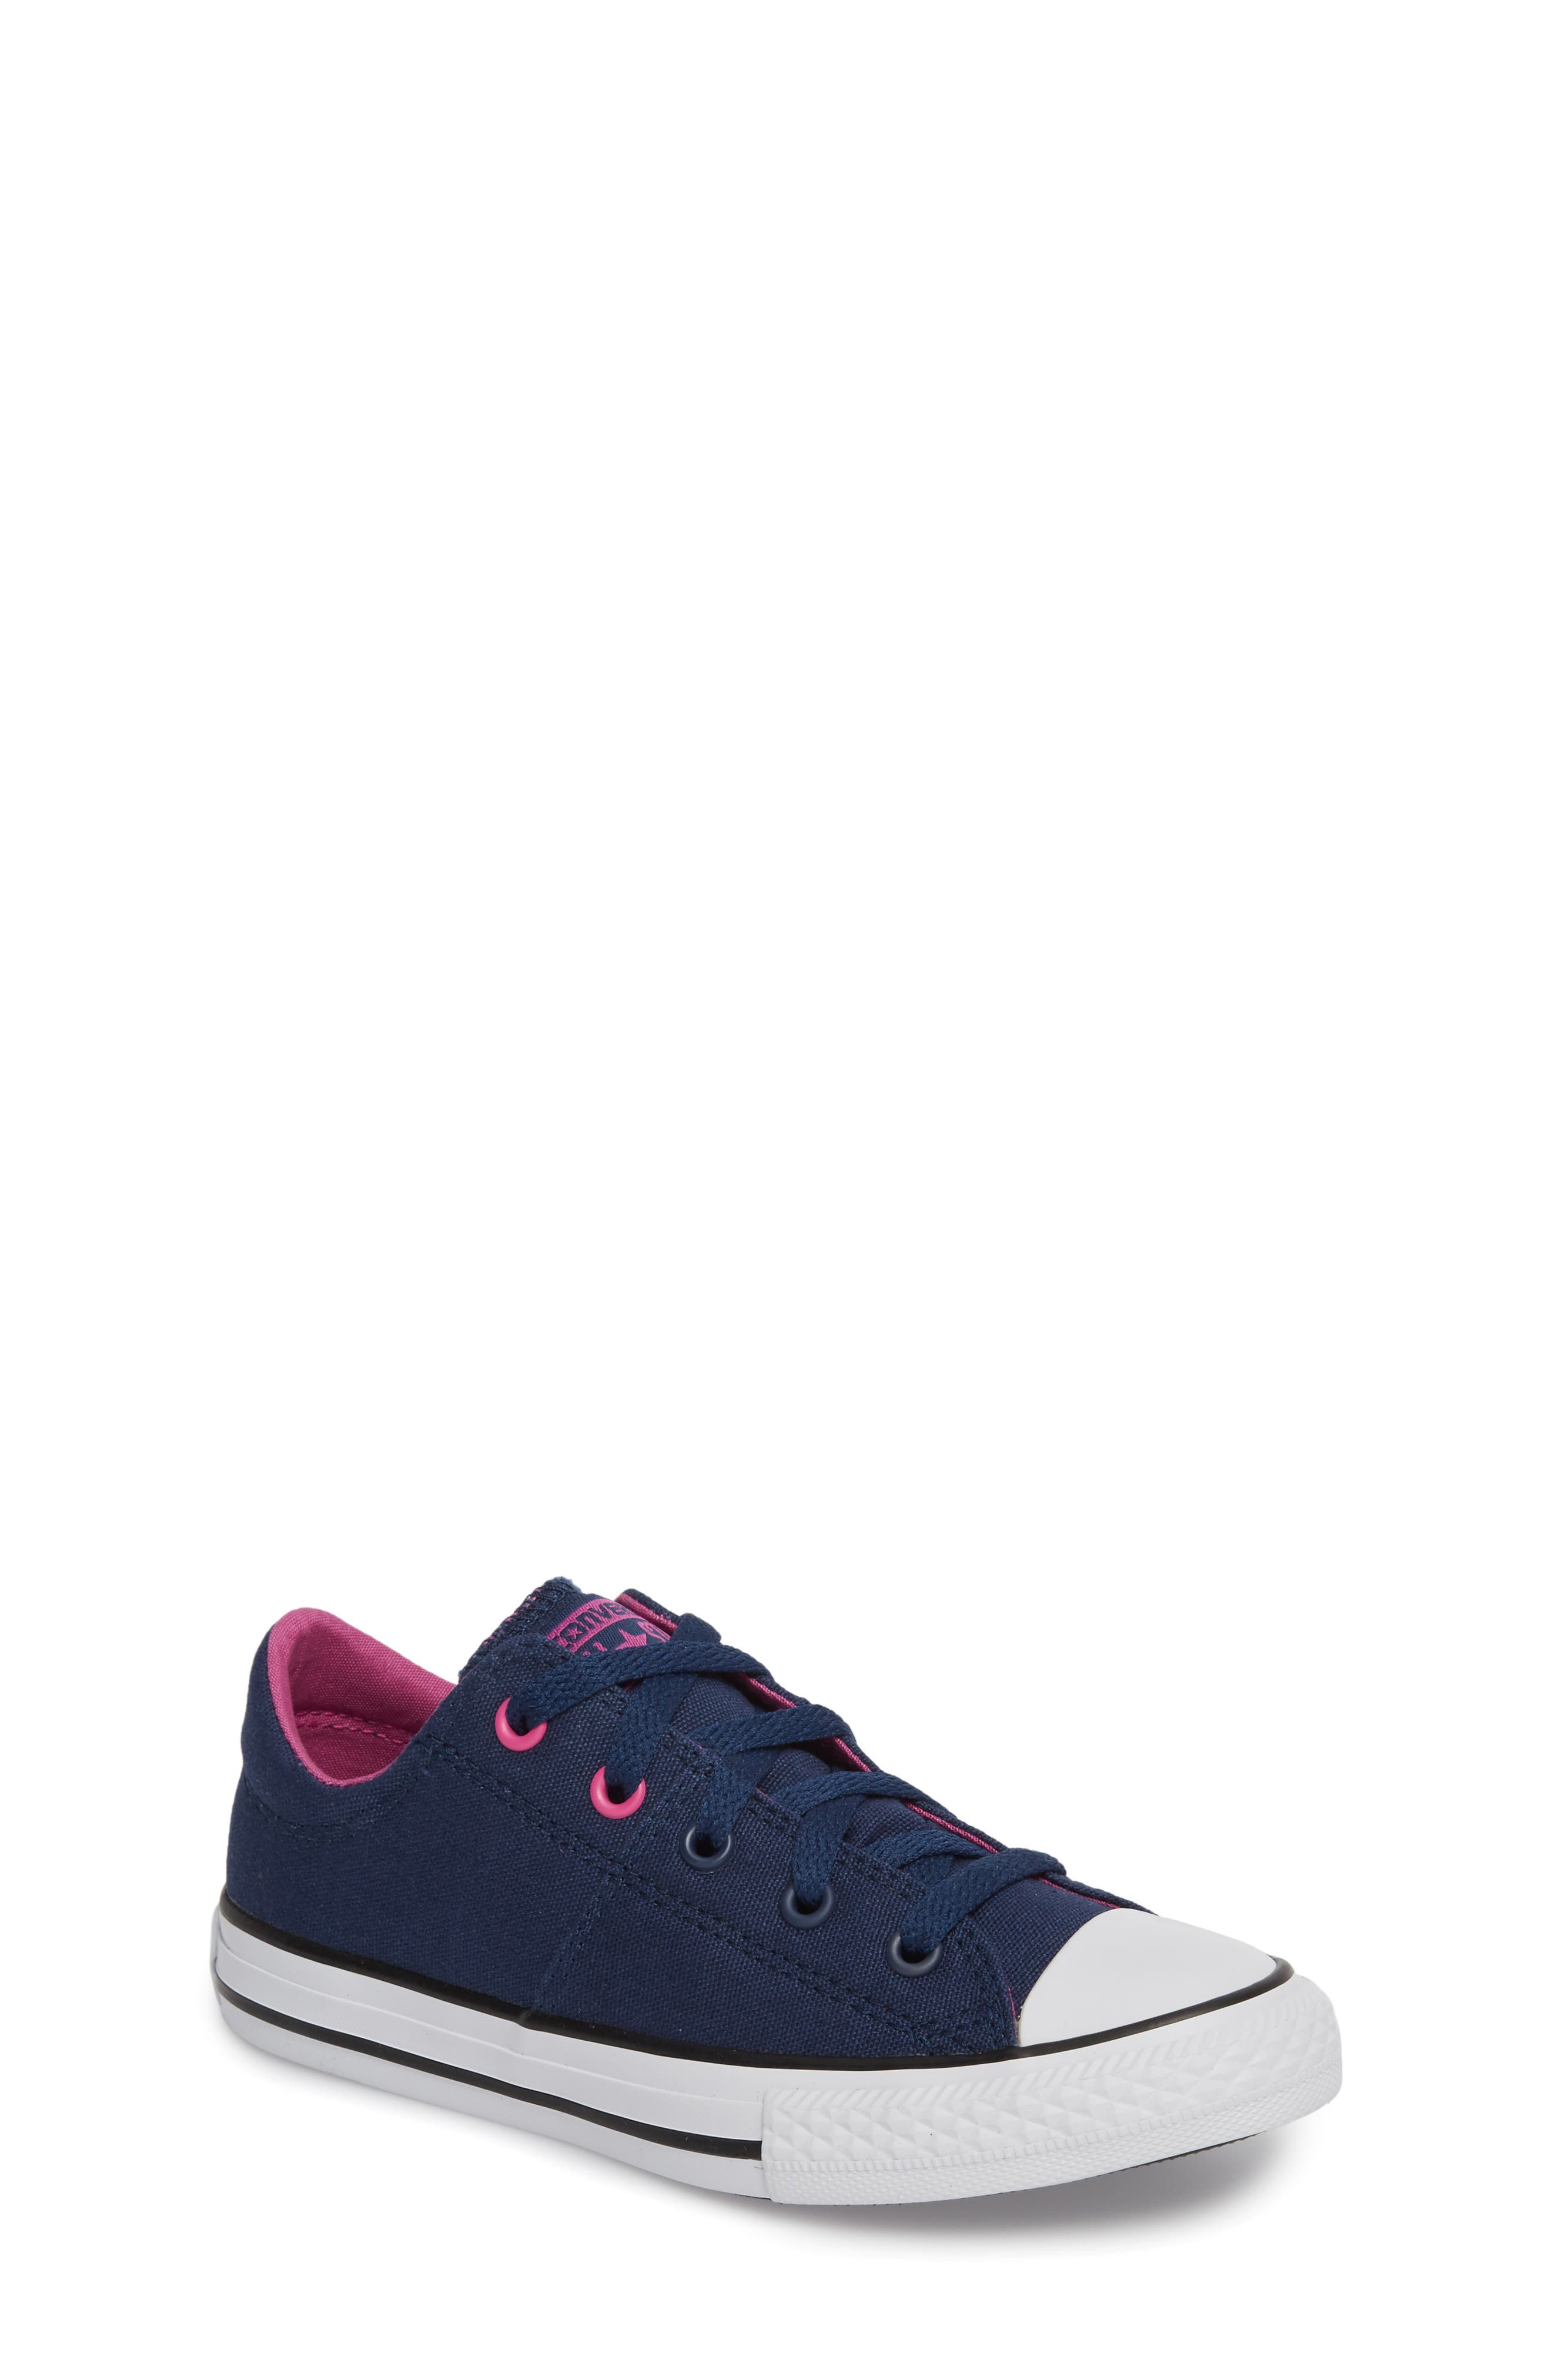 Alternate Image 1 Selected - Converse Chuck Taylor® All Star® Madison Low Top Sneaker (Toddler, Little Kid & Big Kid)